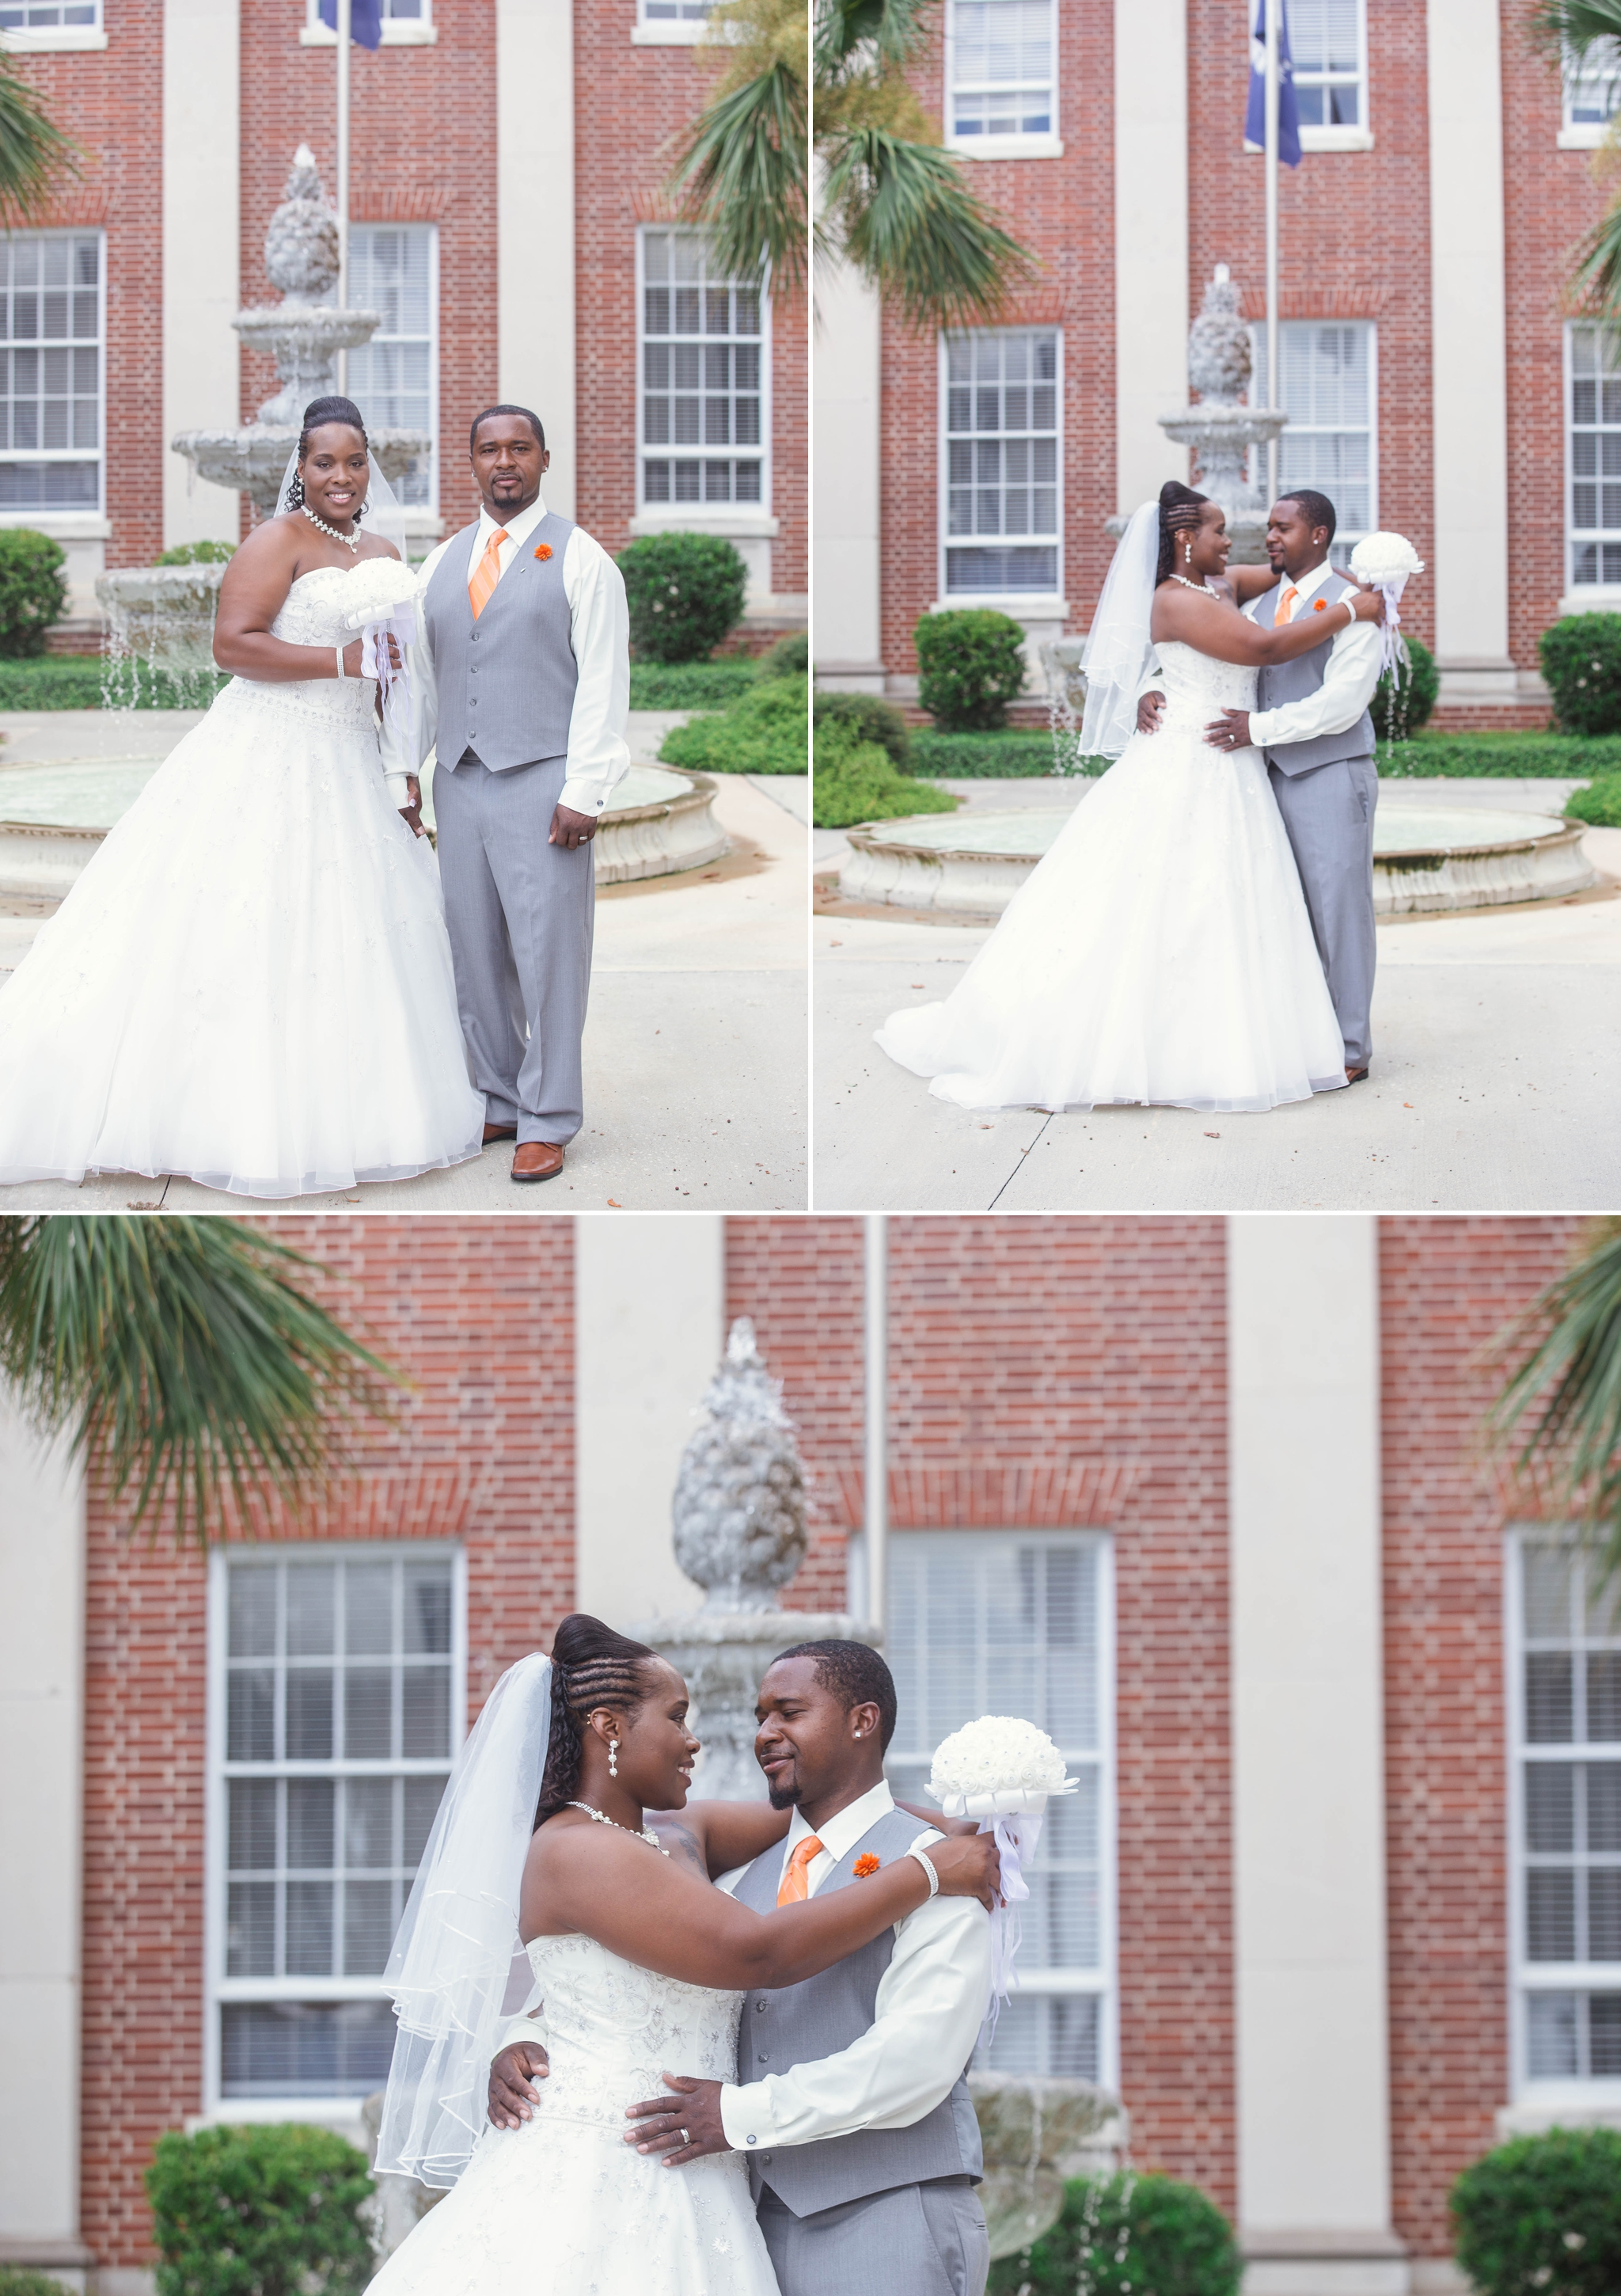 Wedding Photography at the Skye in Bennettsville South Carolina